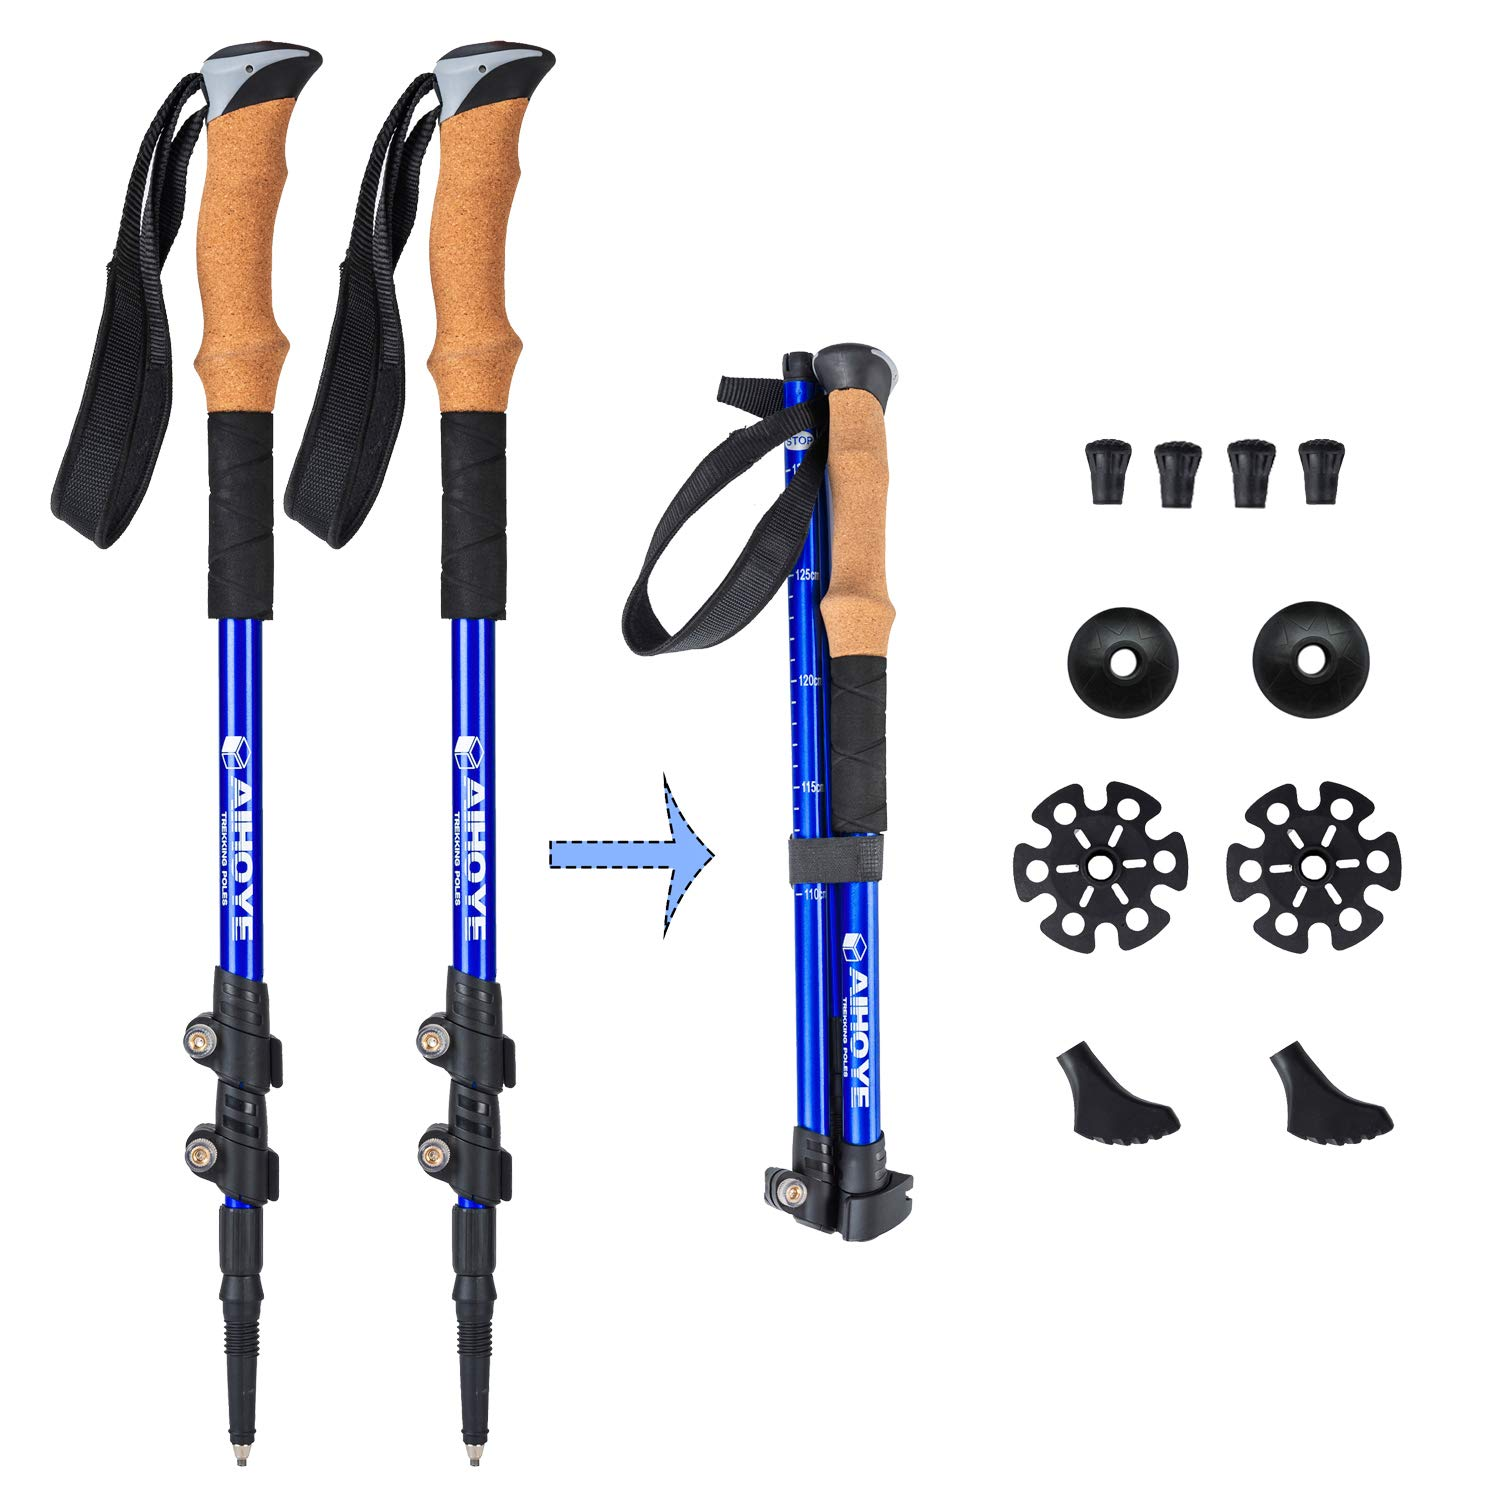 Aihoye Trekking Poles Collapsible Hiking Poles – 2 Pack Anti-Shock Adjustable 7075 Walking Sticks with Quick Flip-Lock and Cork Grips